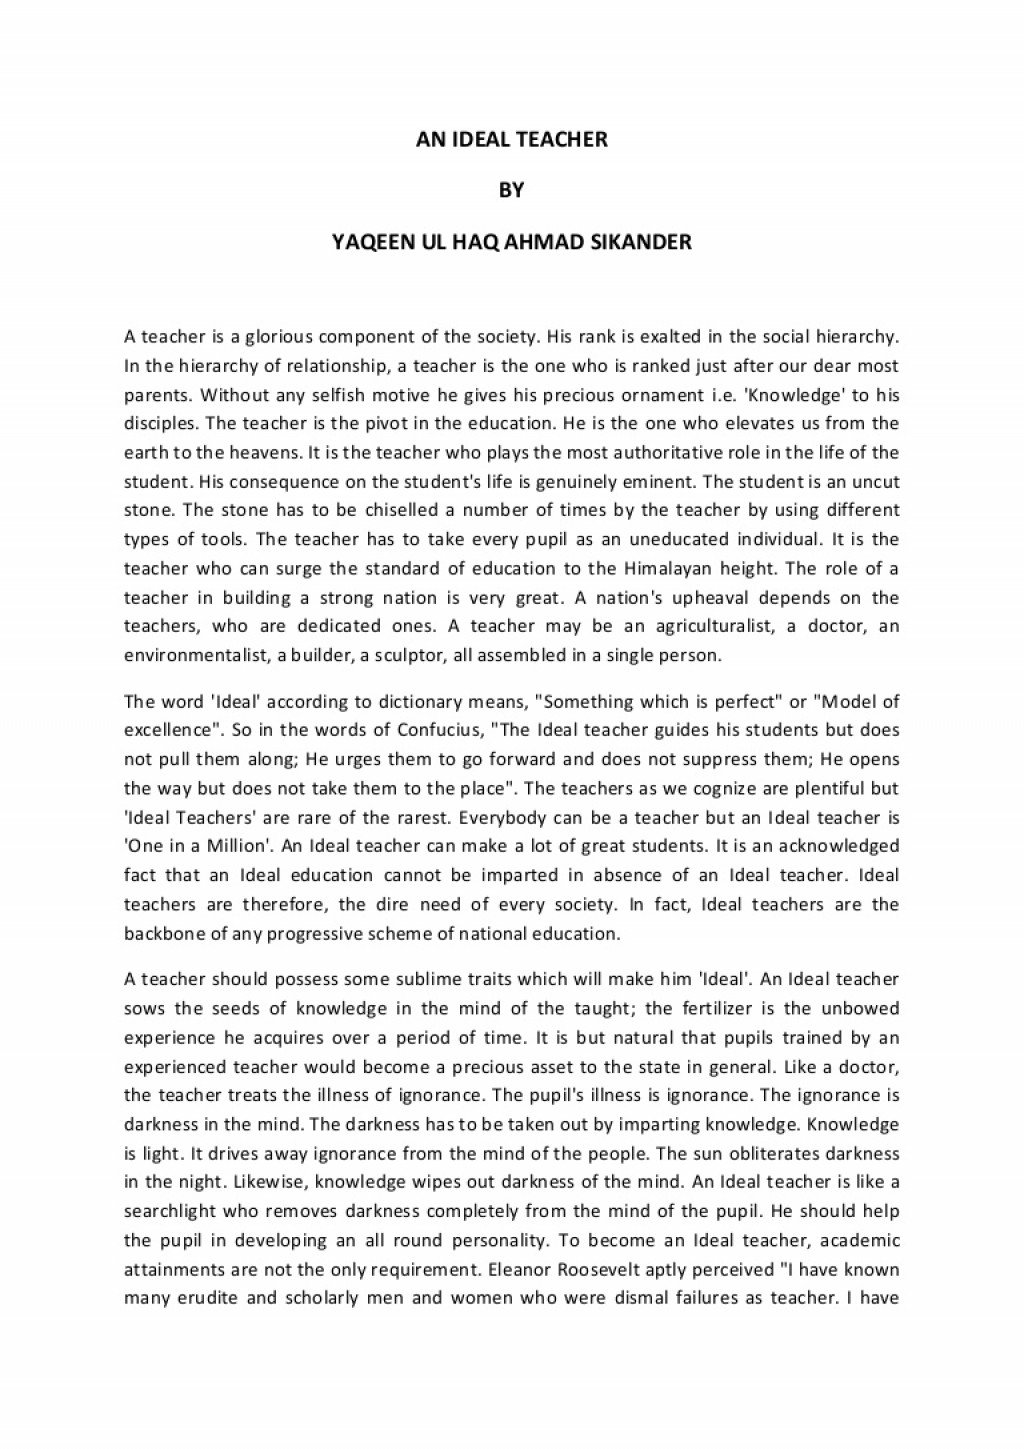 005 Essay Example Anidealteacher Phpapp02 Thumbnail On Marvelous Teacher Teachers Importance My Class In Urdu Write An Large